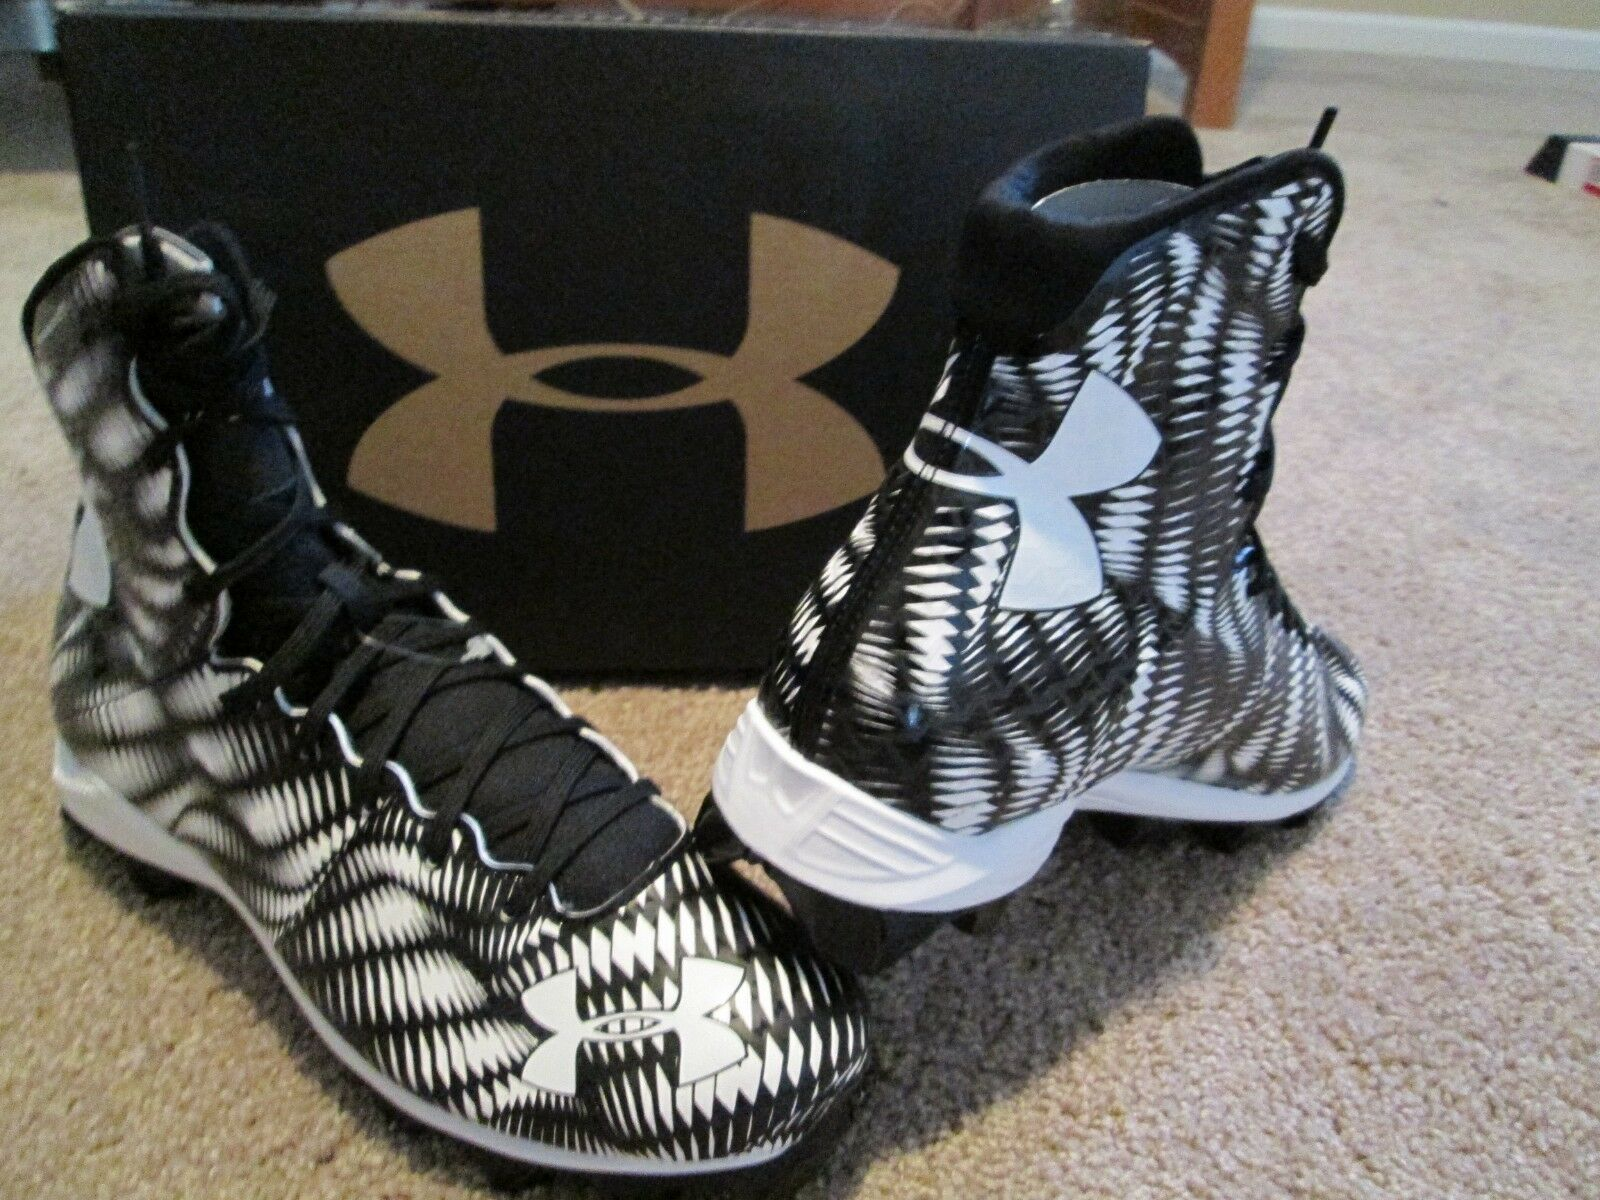 NEW Under Armour Highlight RM Football/Lacrosse Cleats Blk  Blanc 11 FREE SHIP